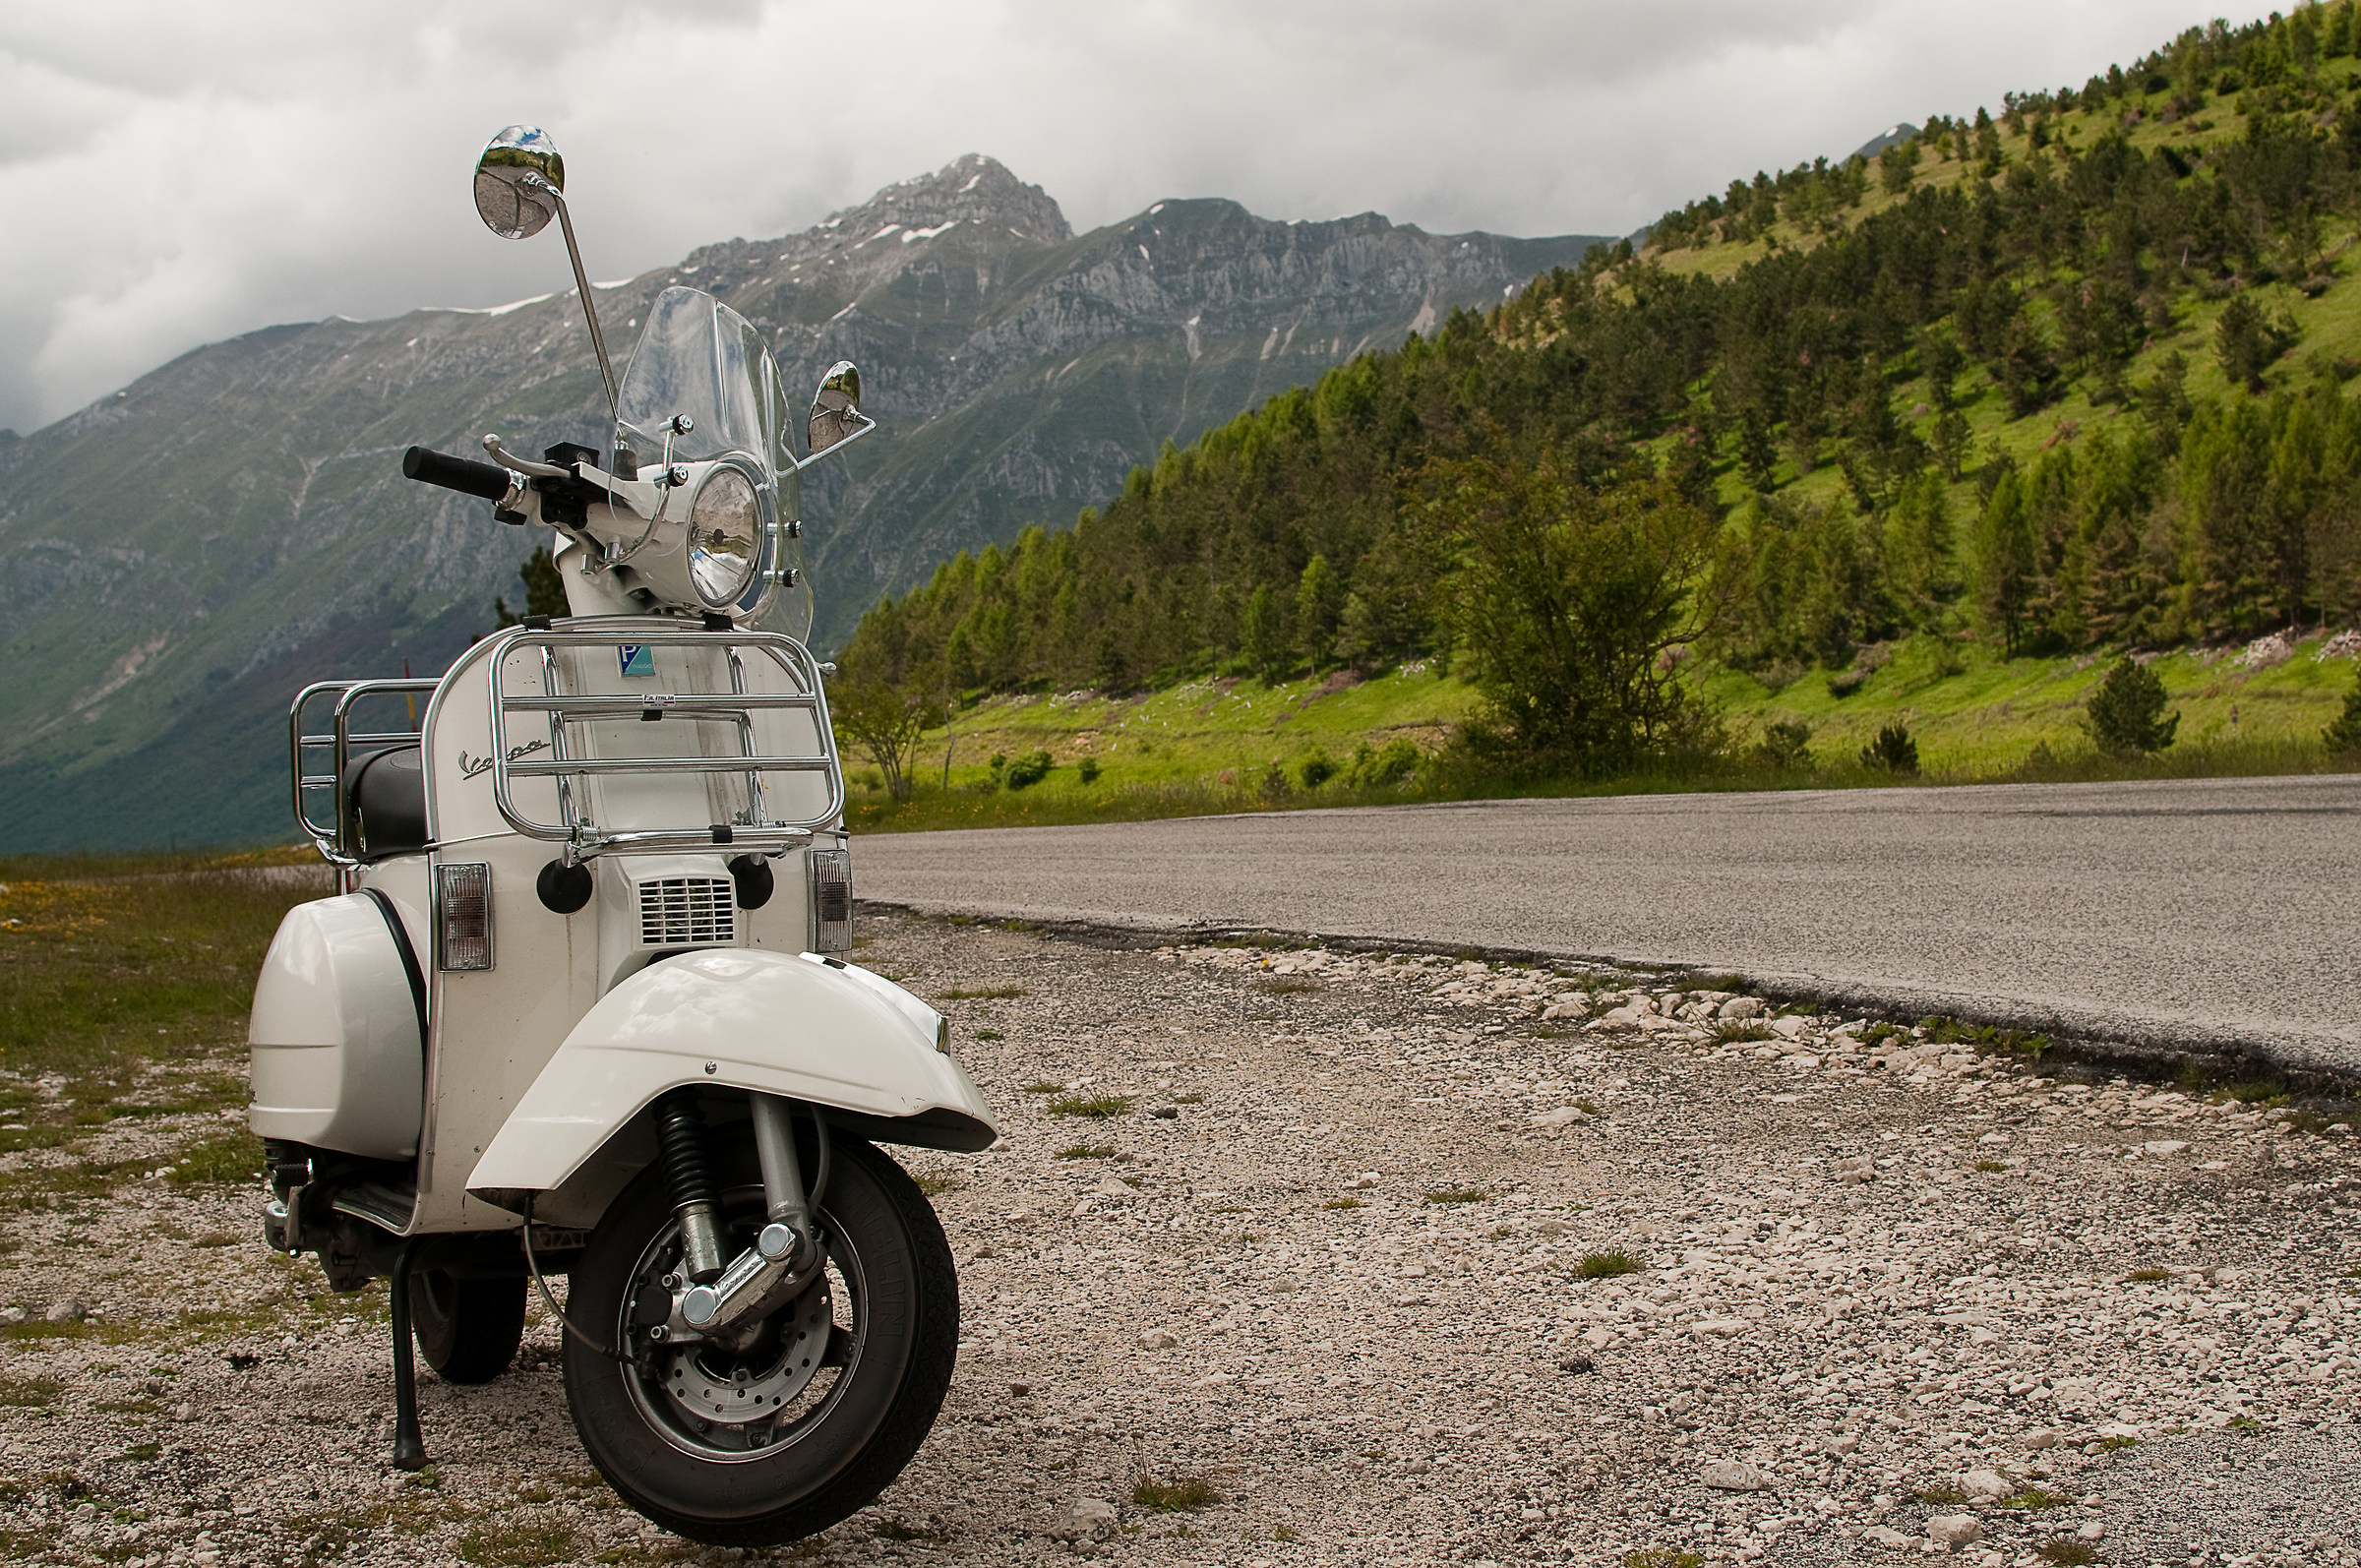 In vespa on the road...